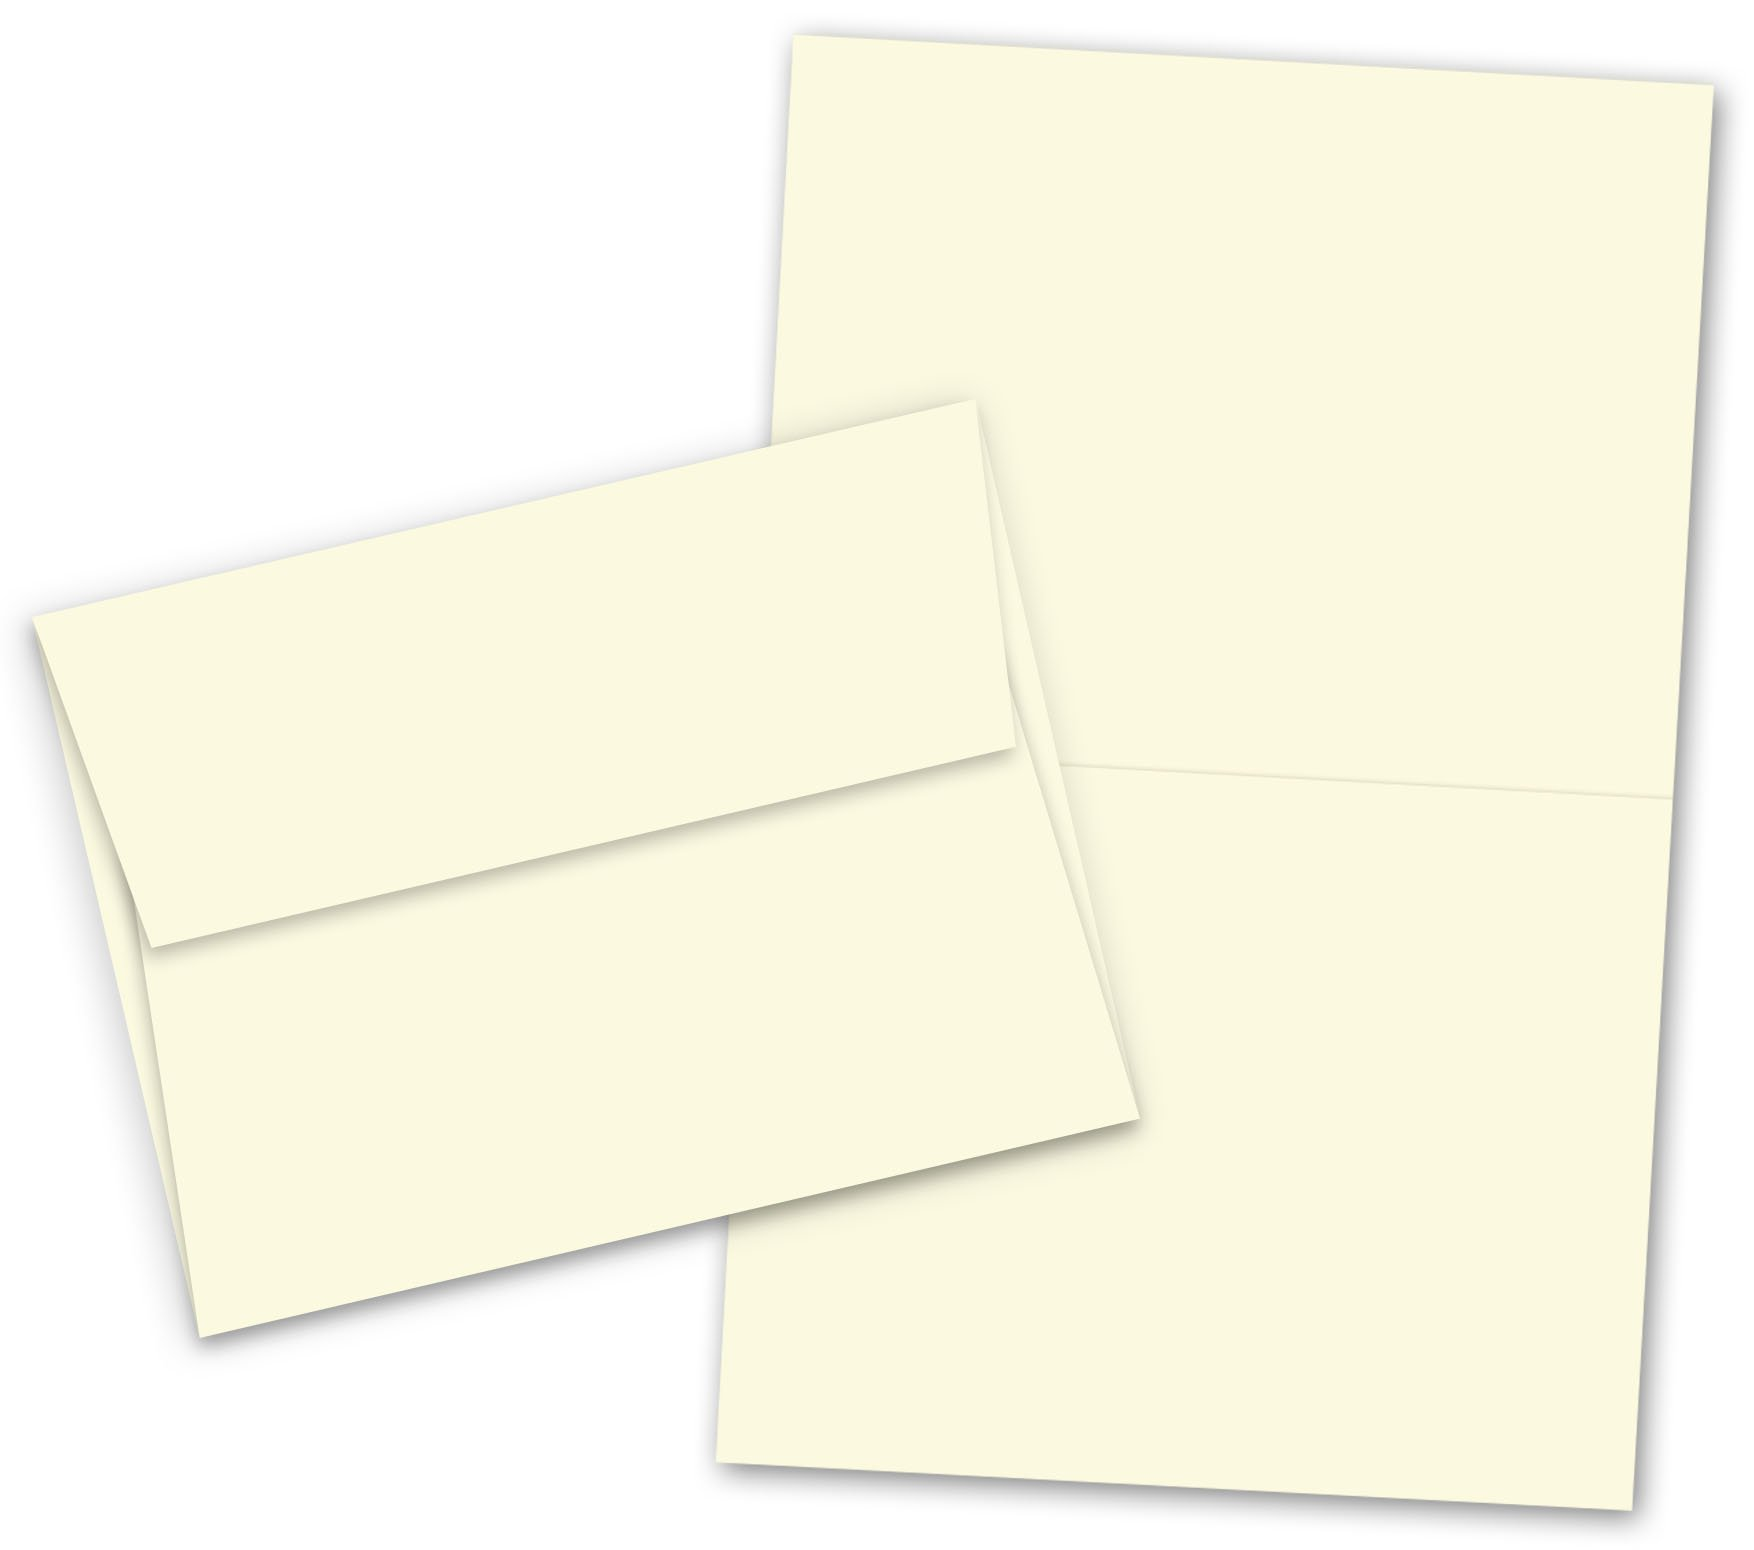 A7 - 5'' X 7'' Heavyweight Blank Cream / Natural Greeting Fold Over Card Sets - 50 Cards & Envelopes